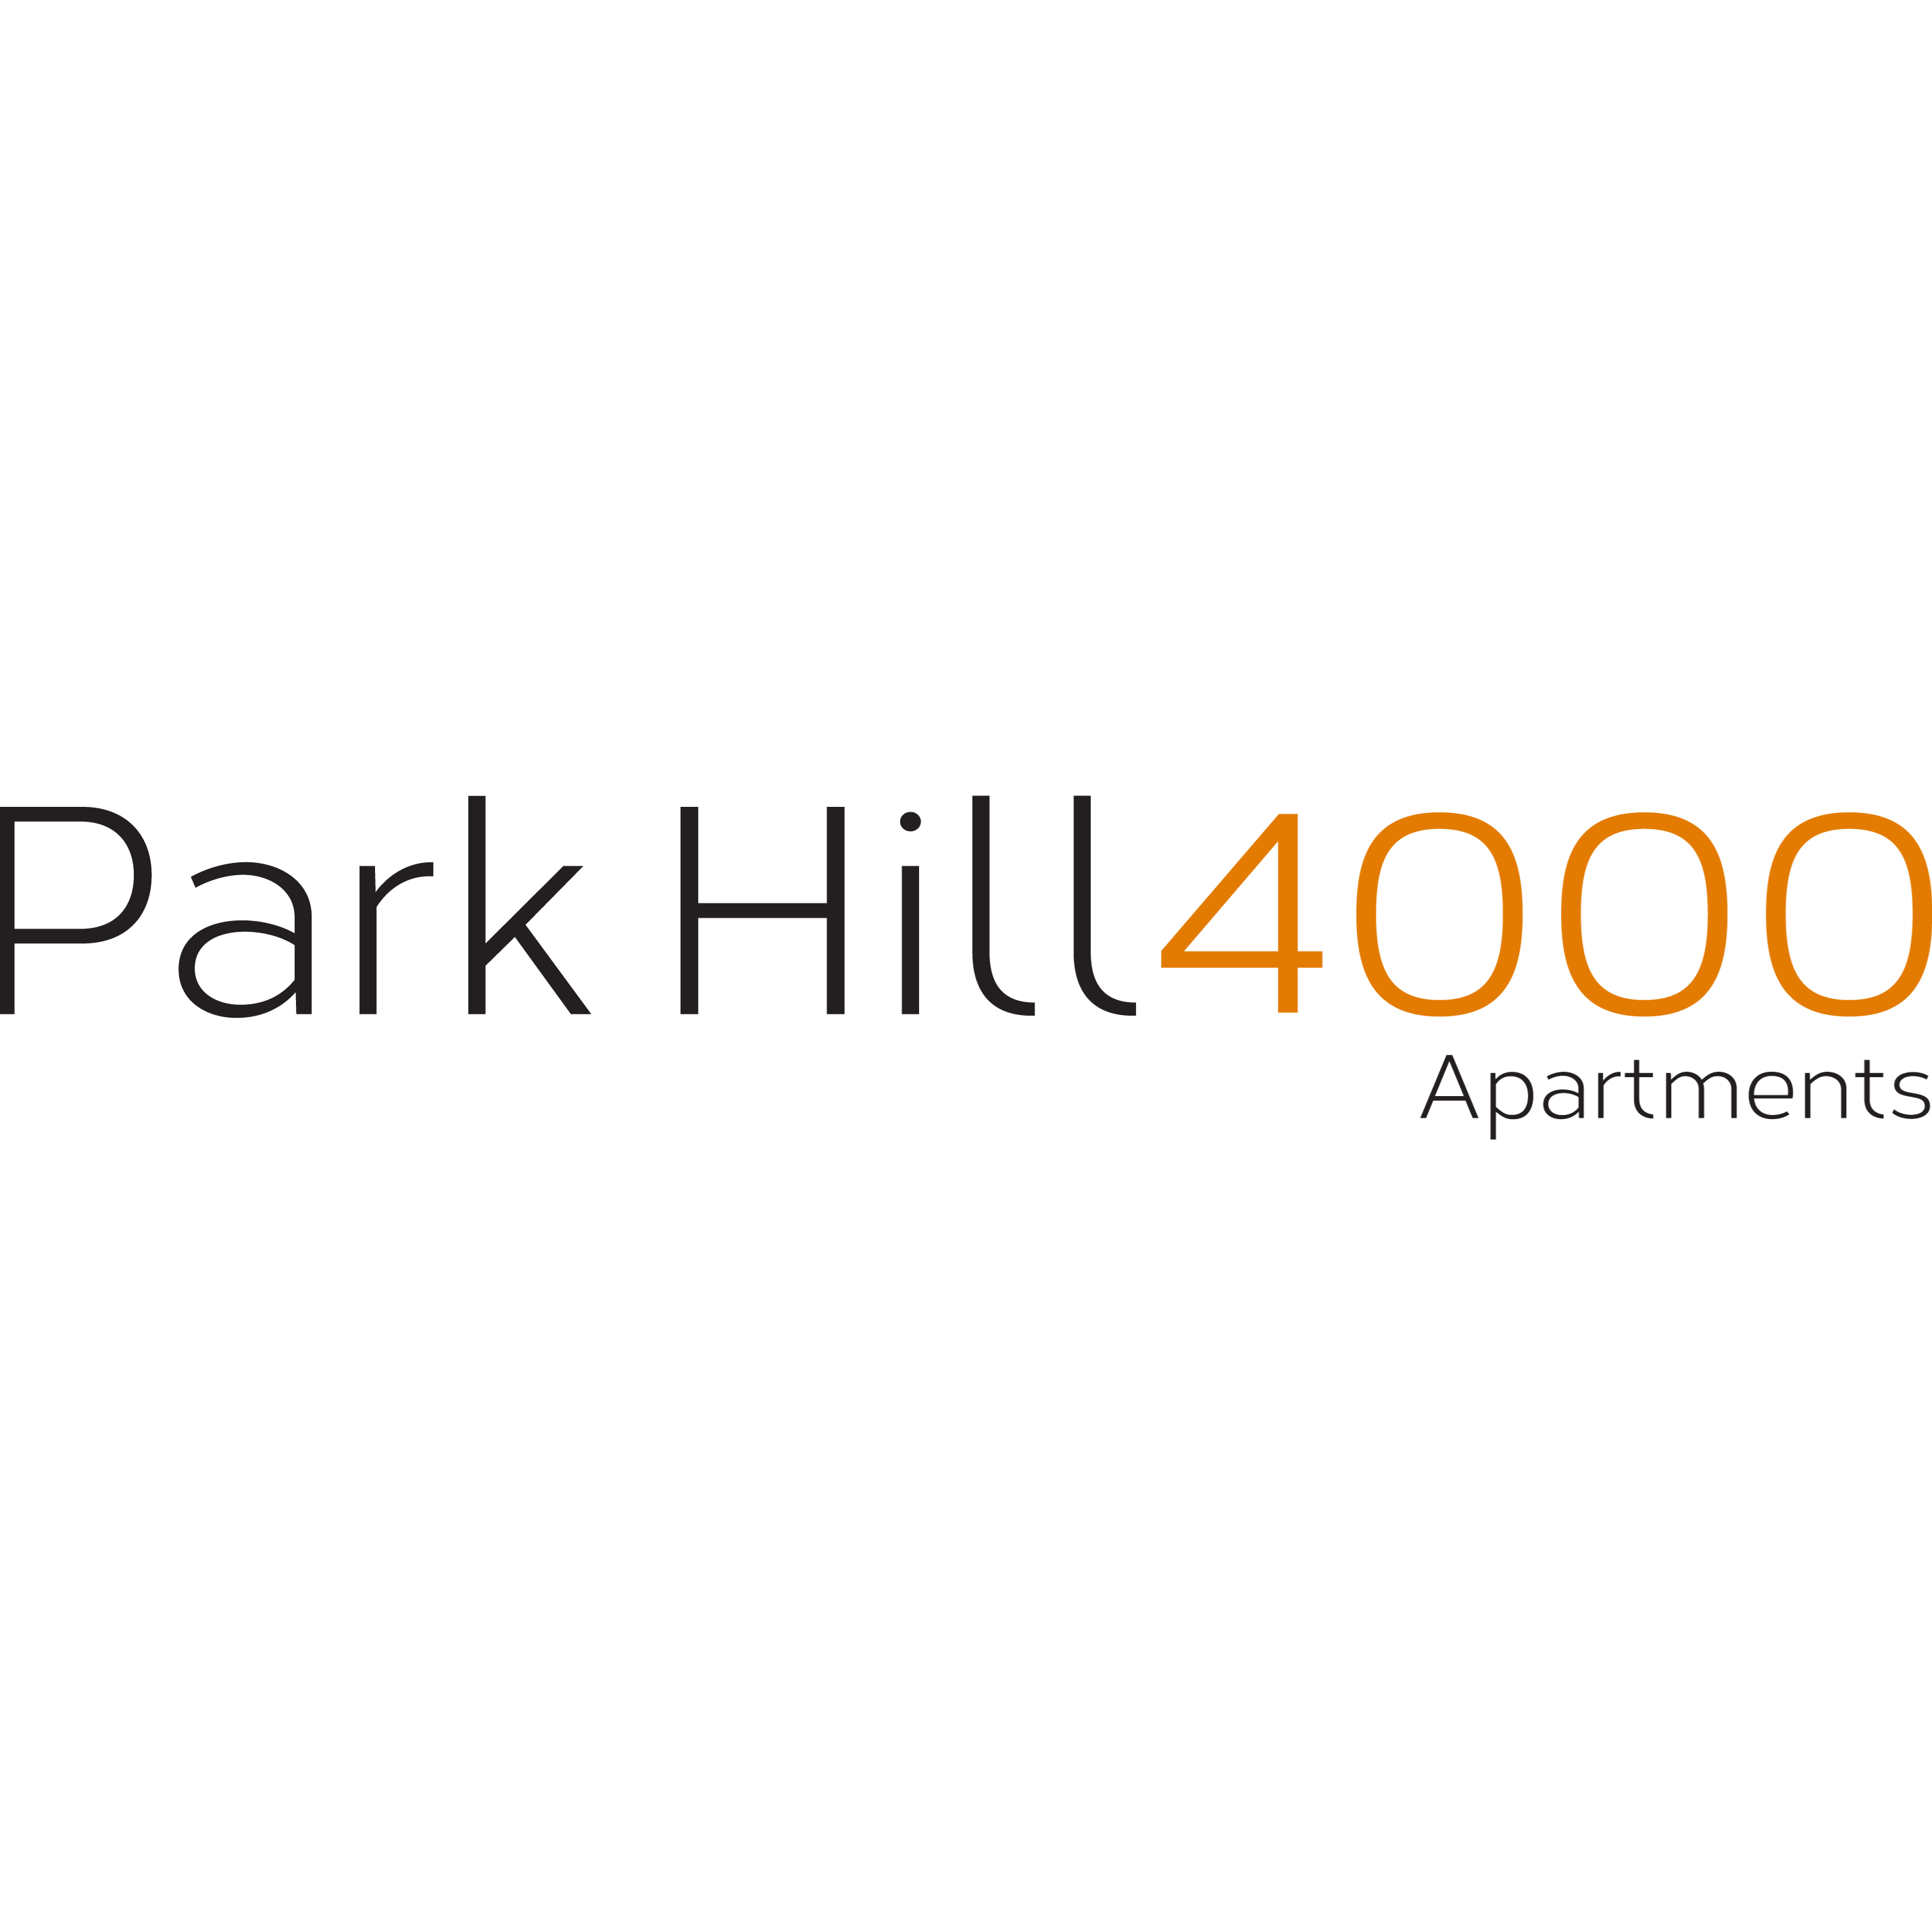 Park Hill 4000